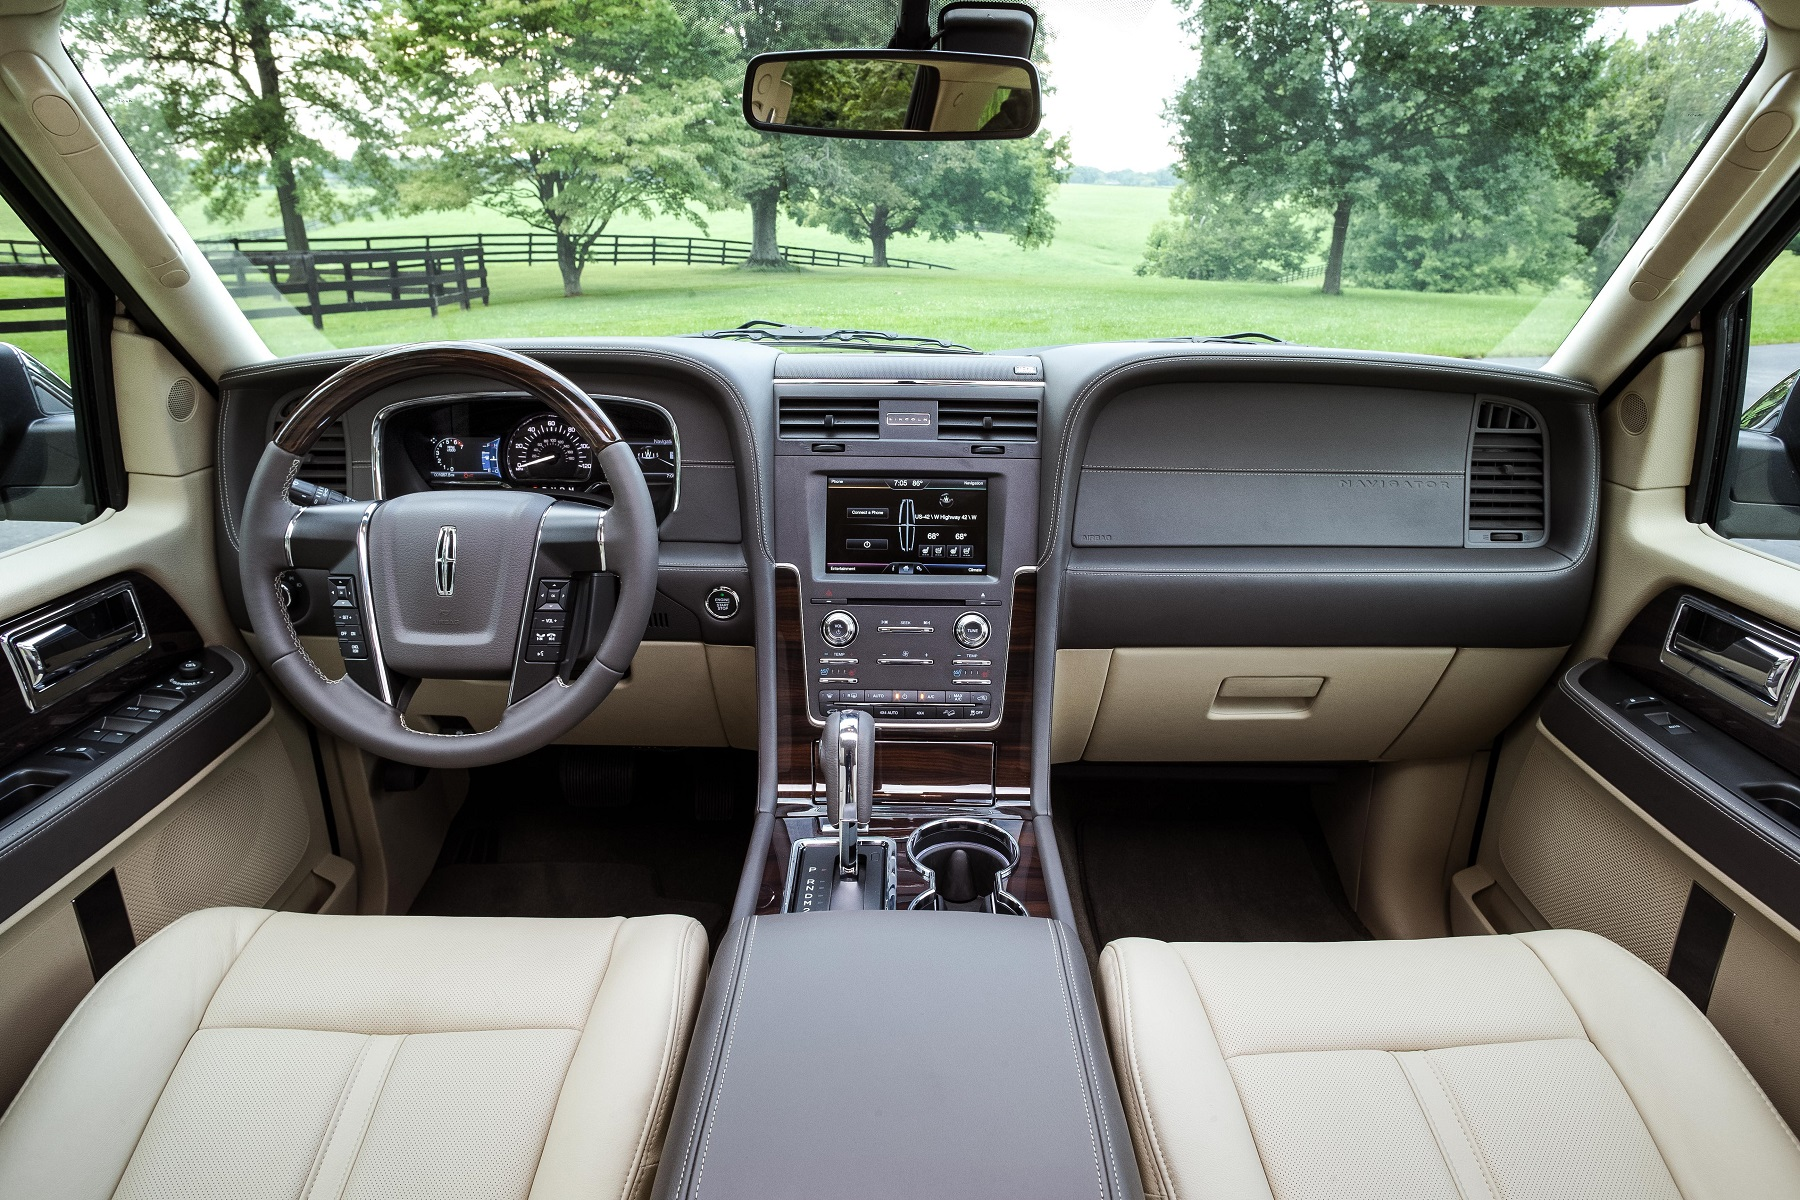 Lincoln Navigator: Powered by EcoBoost turbo engine